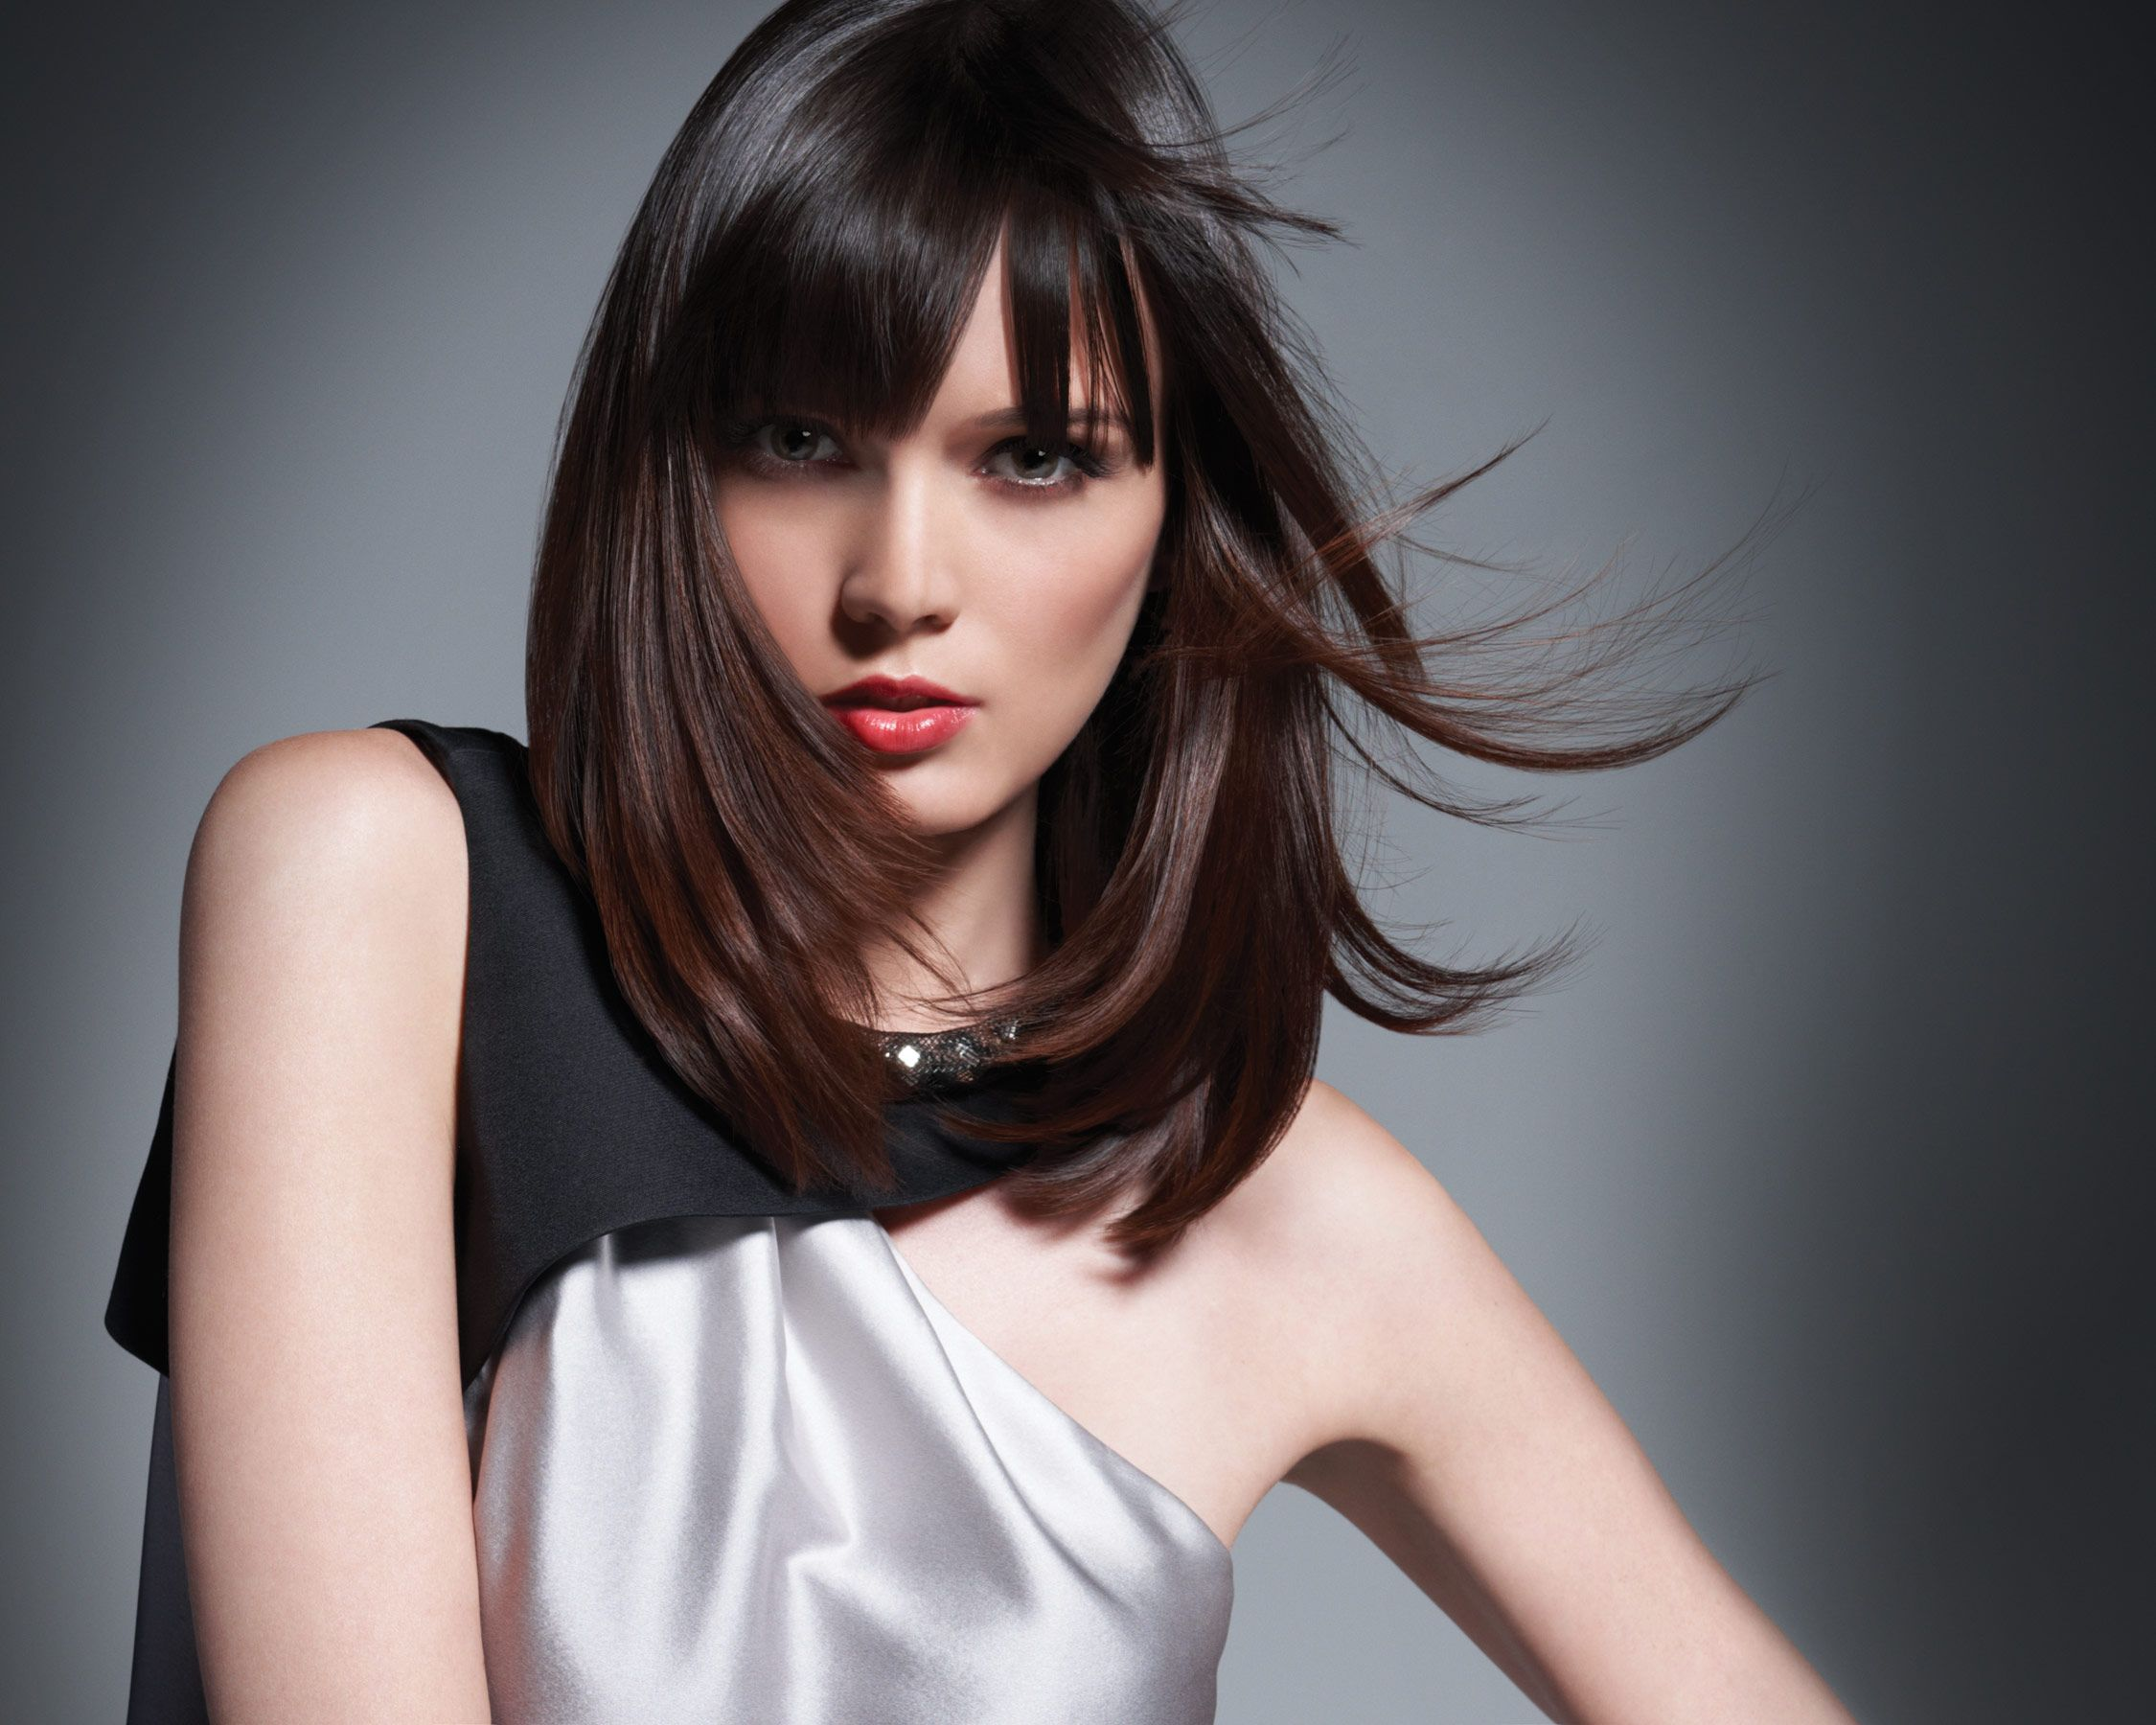 Paul mitchell model this is why we love paul mitchell for Model salon